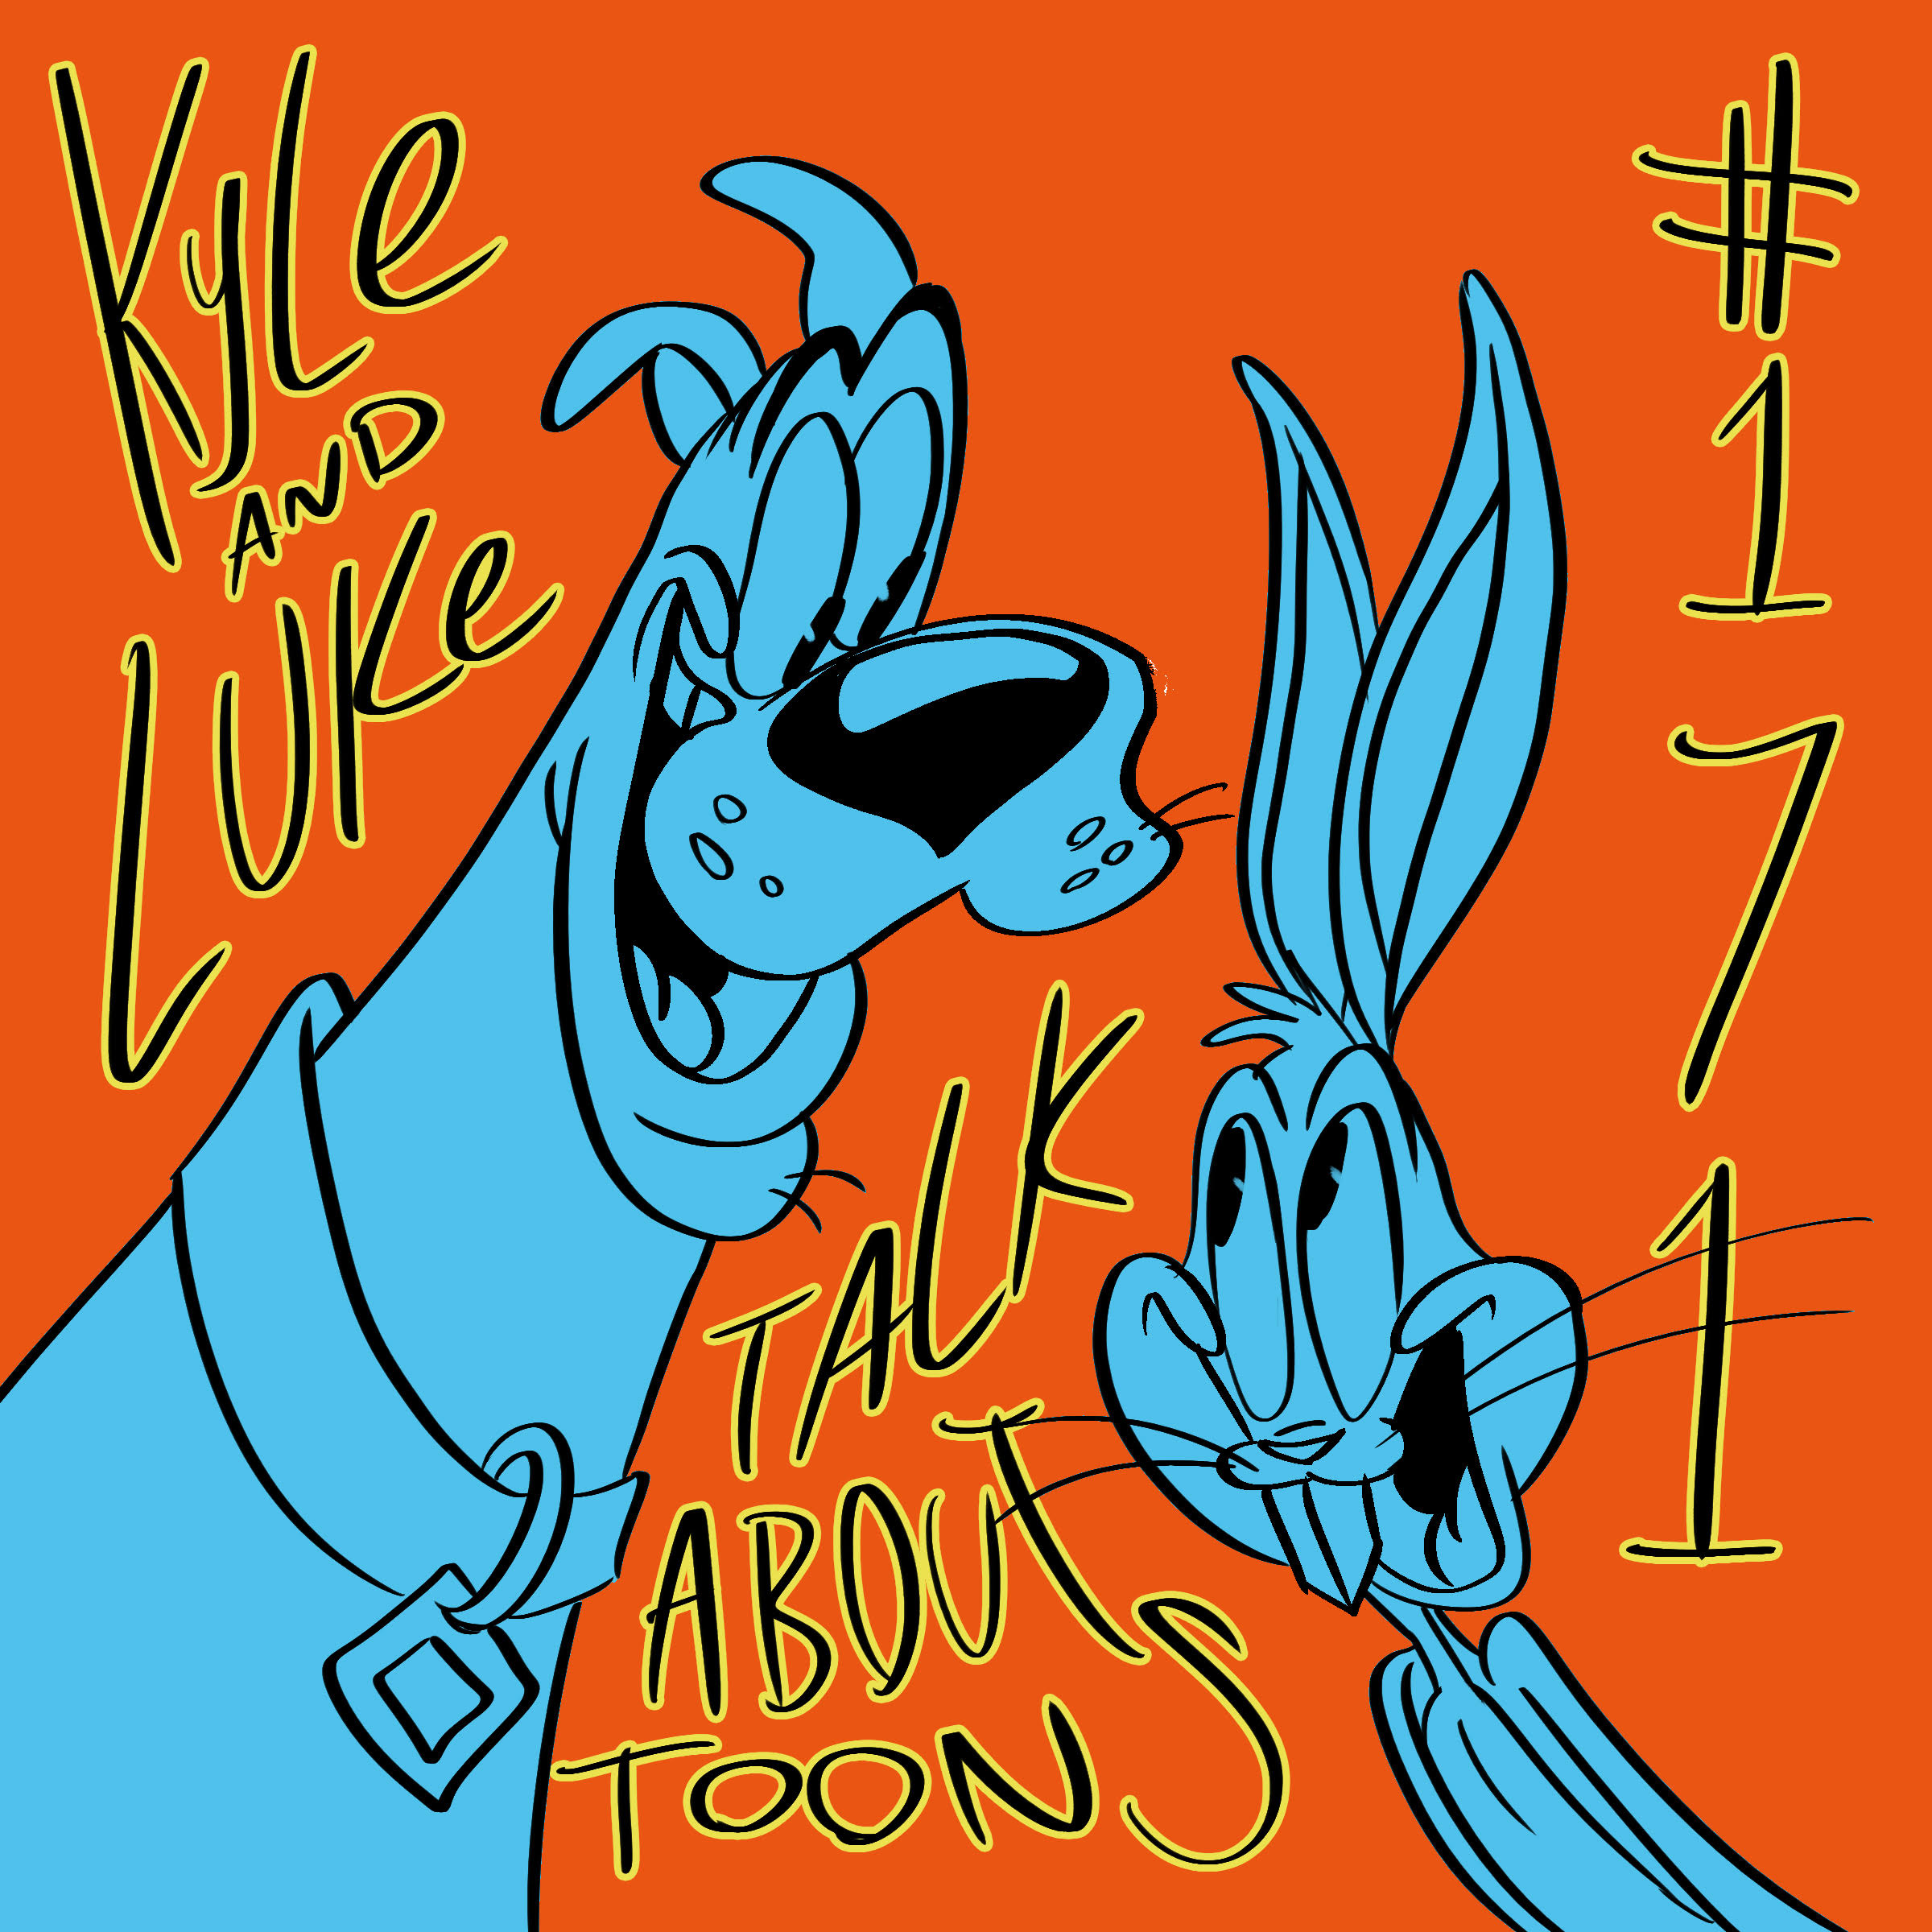 Kyle and Luke Talk About Toons #171: Good Nerd Decisions